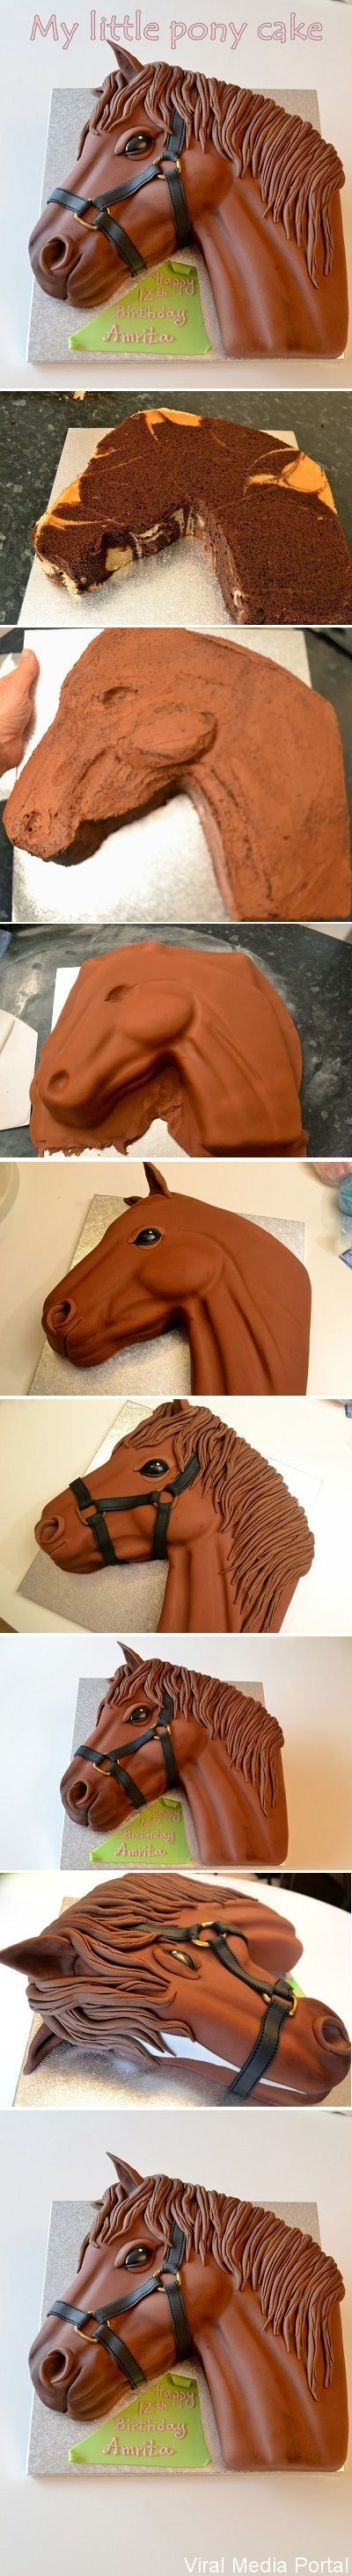 How To Make Horse Cake Baking Making and Caking Pinterest